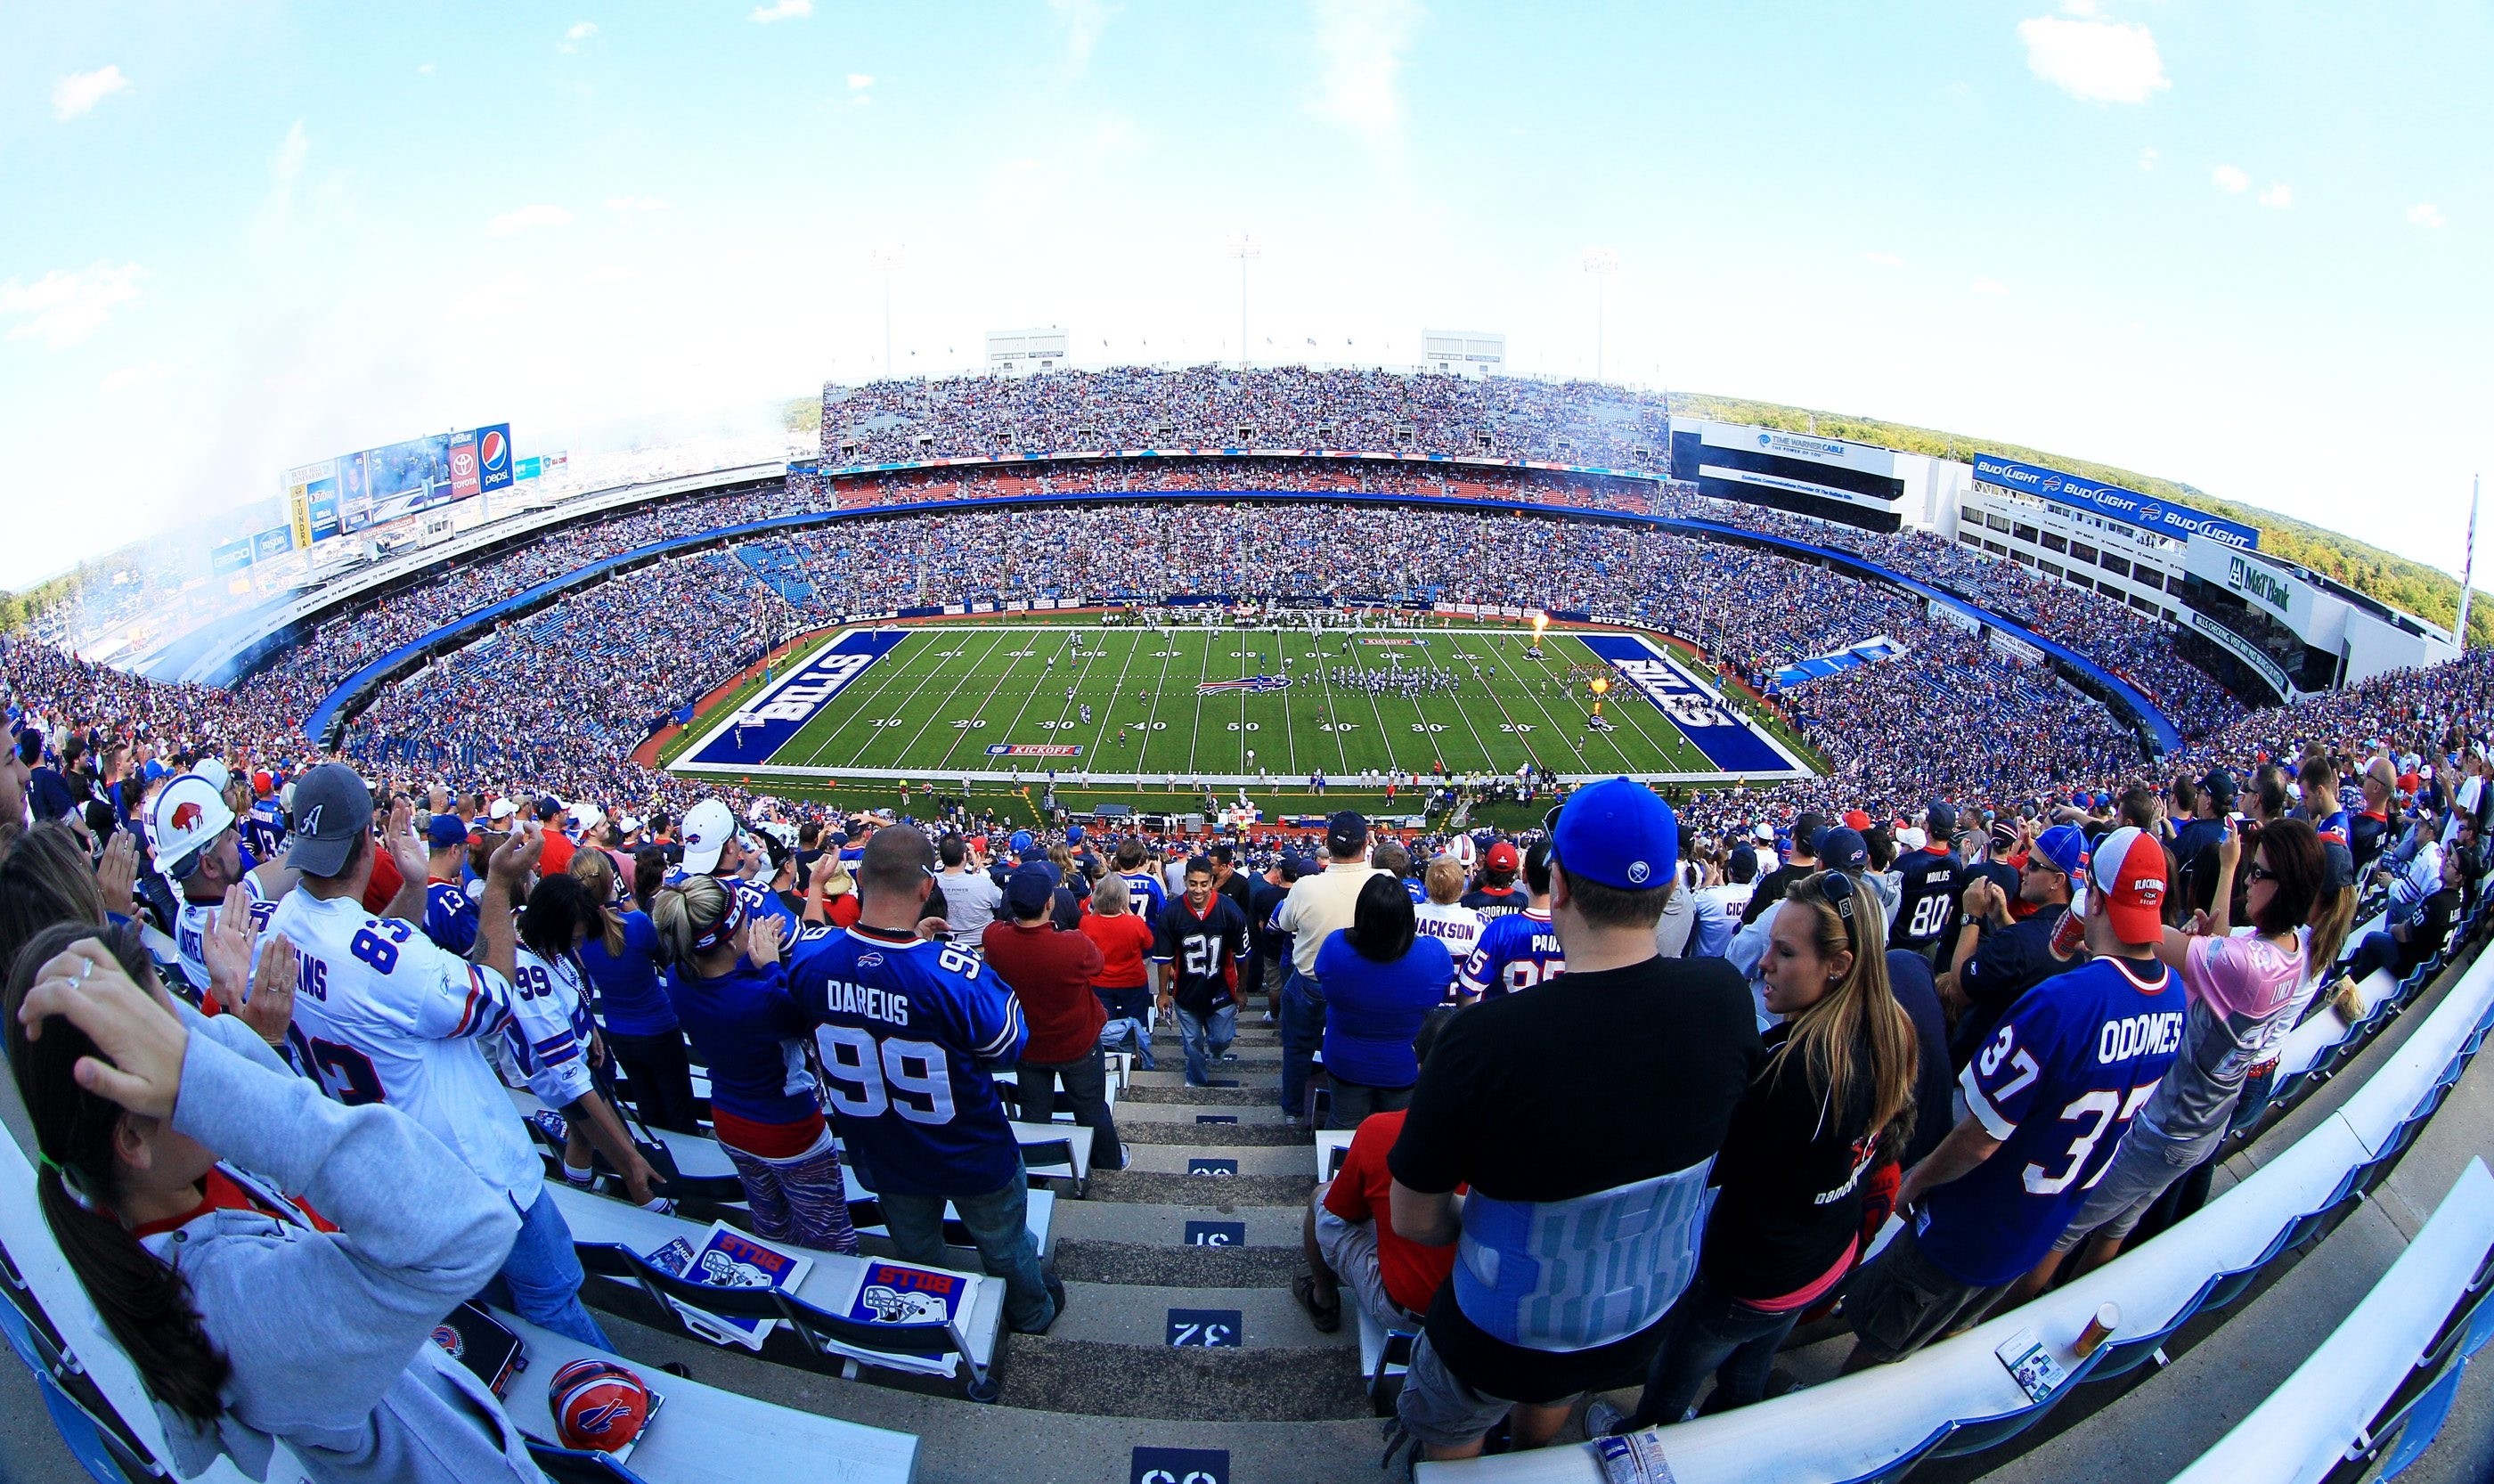 This file photo shows fans enjoying a Bills game at Ralph Wilson Stadium in Orchard Park.  James P. McCoy/Buffalo News file photo